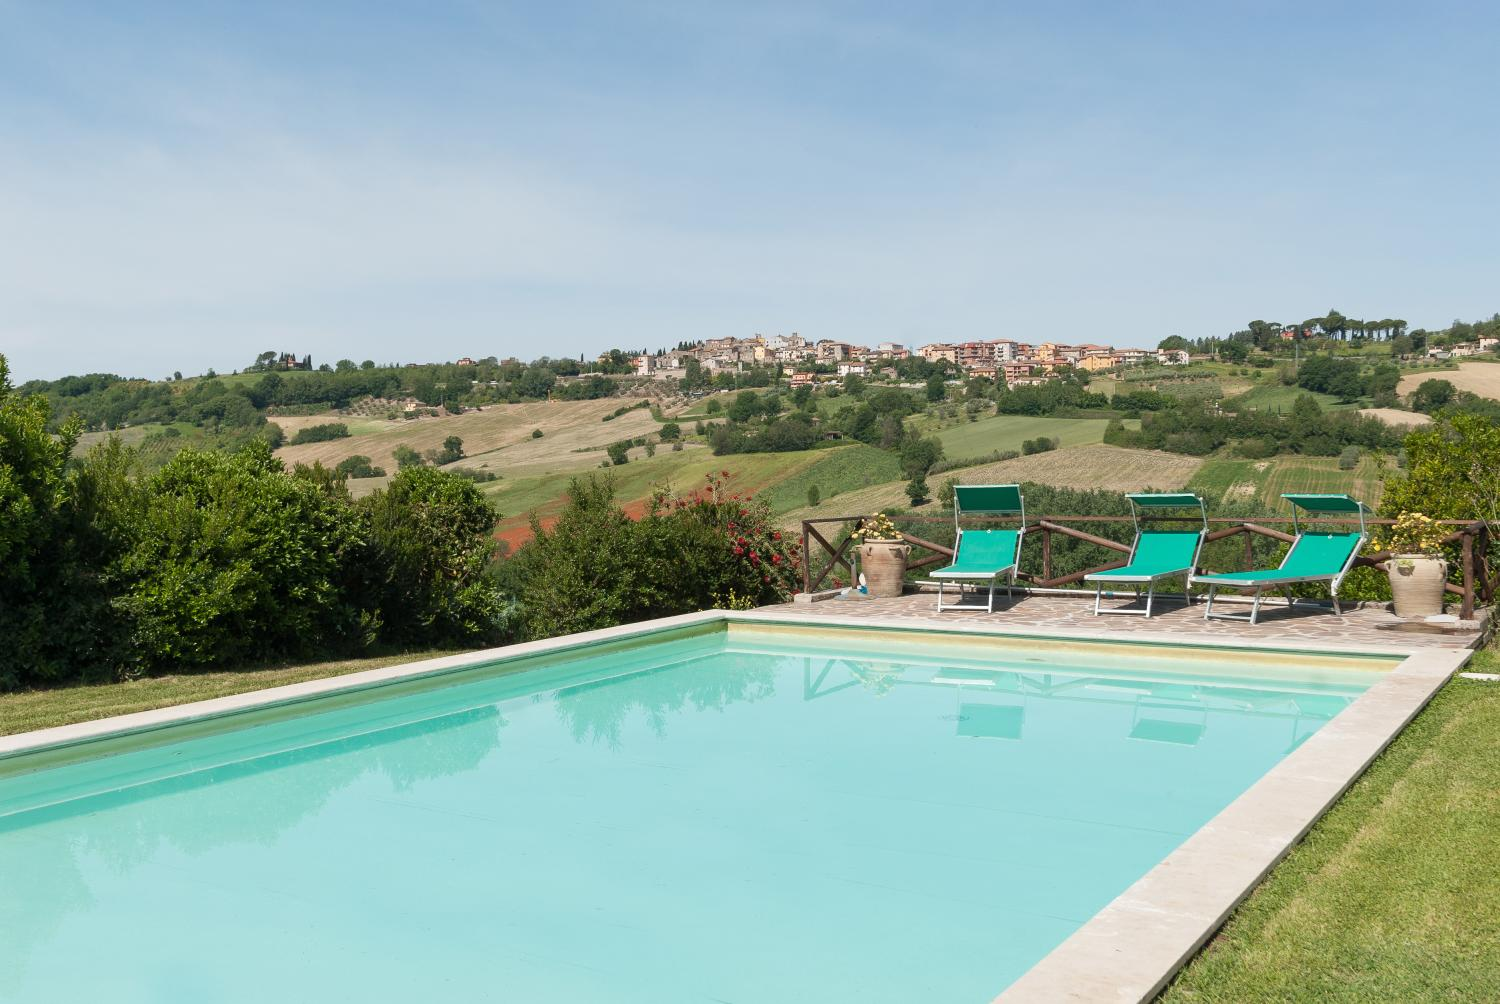 Outdoor Pool 2, Il Girasole, Otricoli, Umbria.